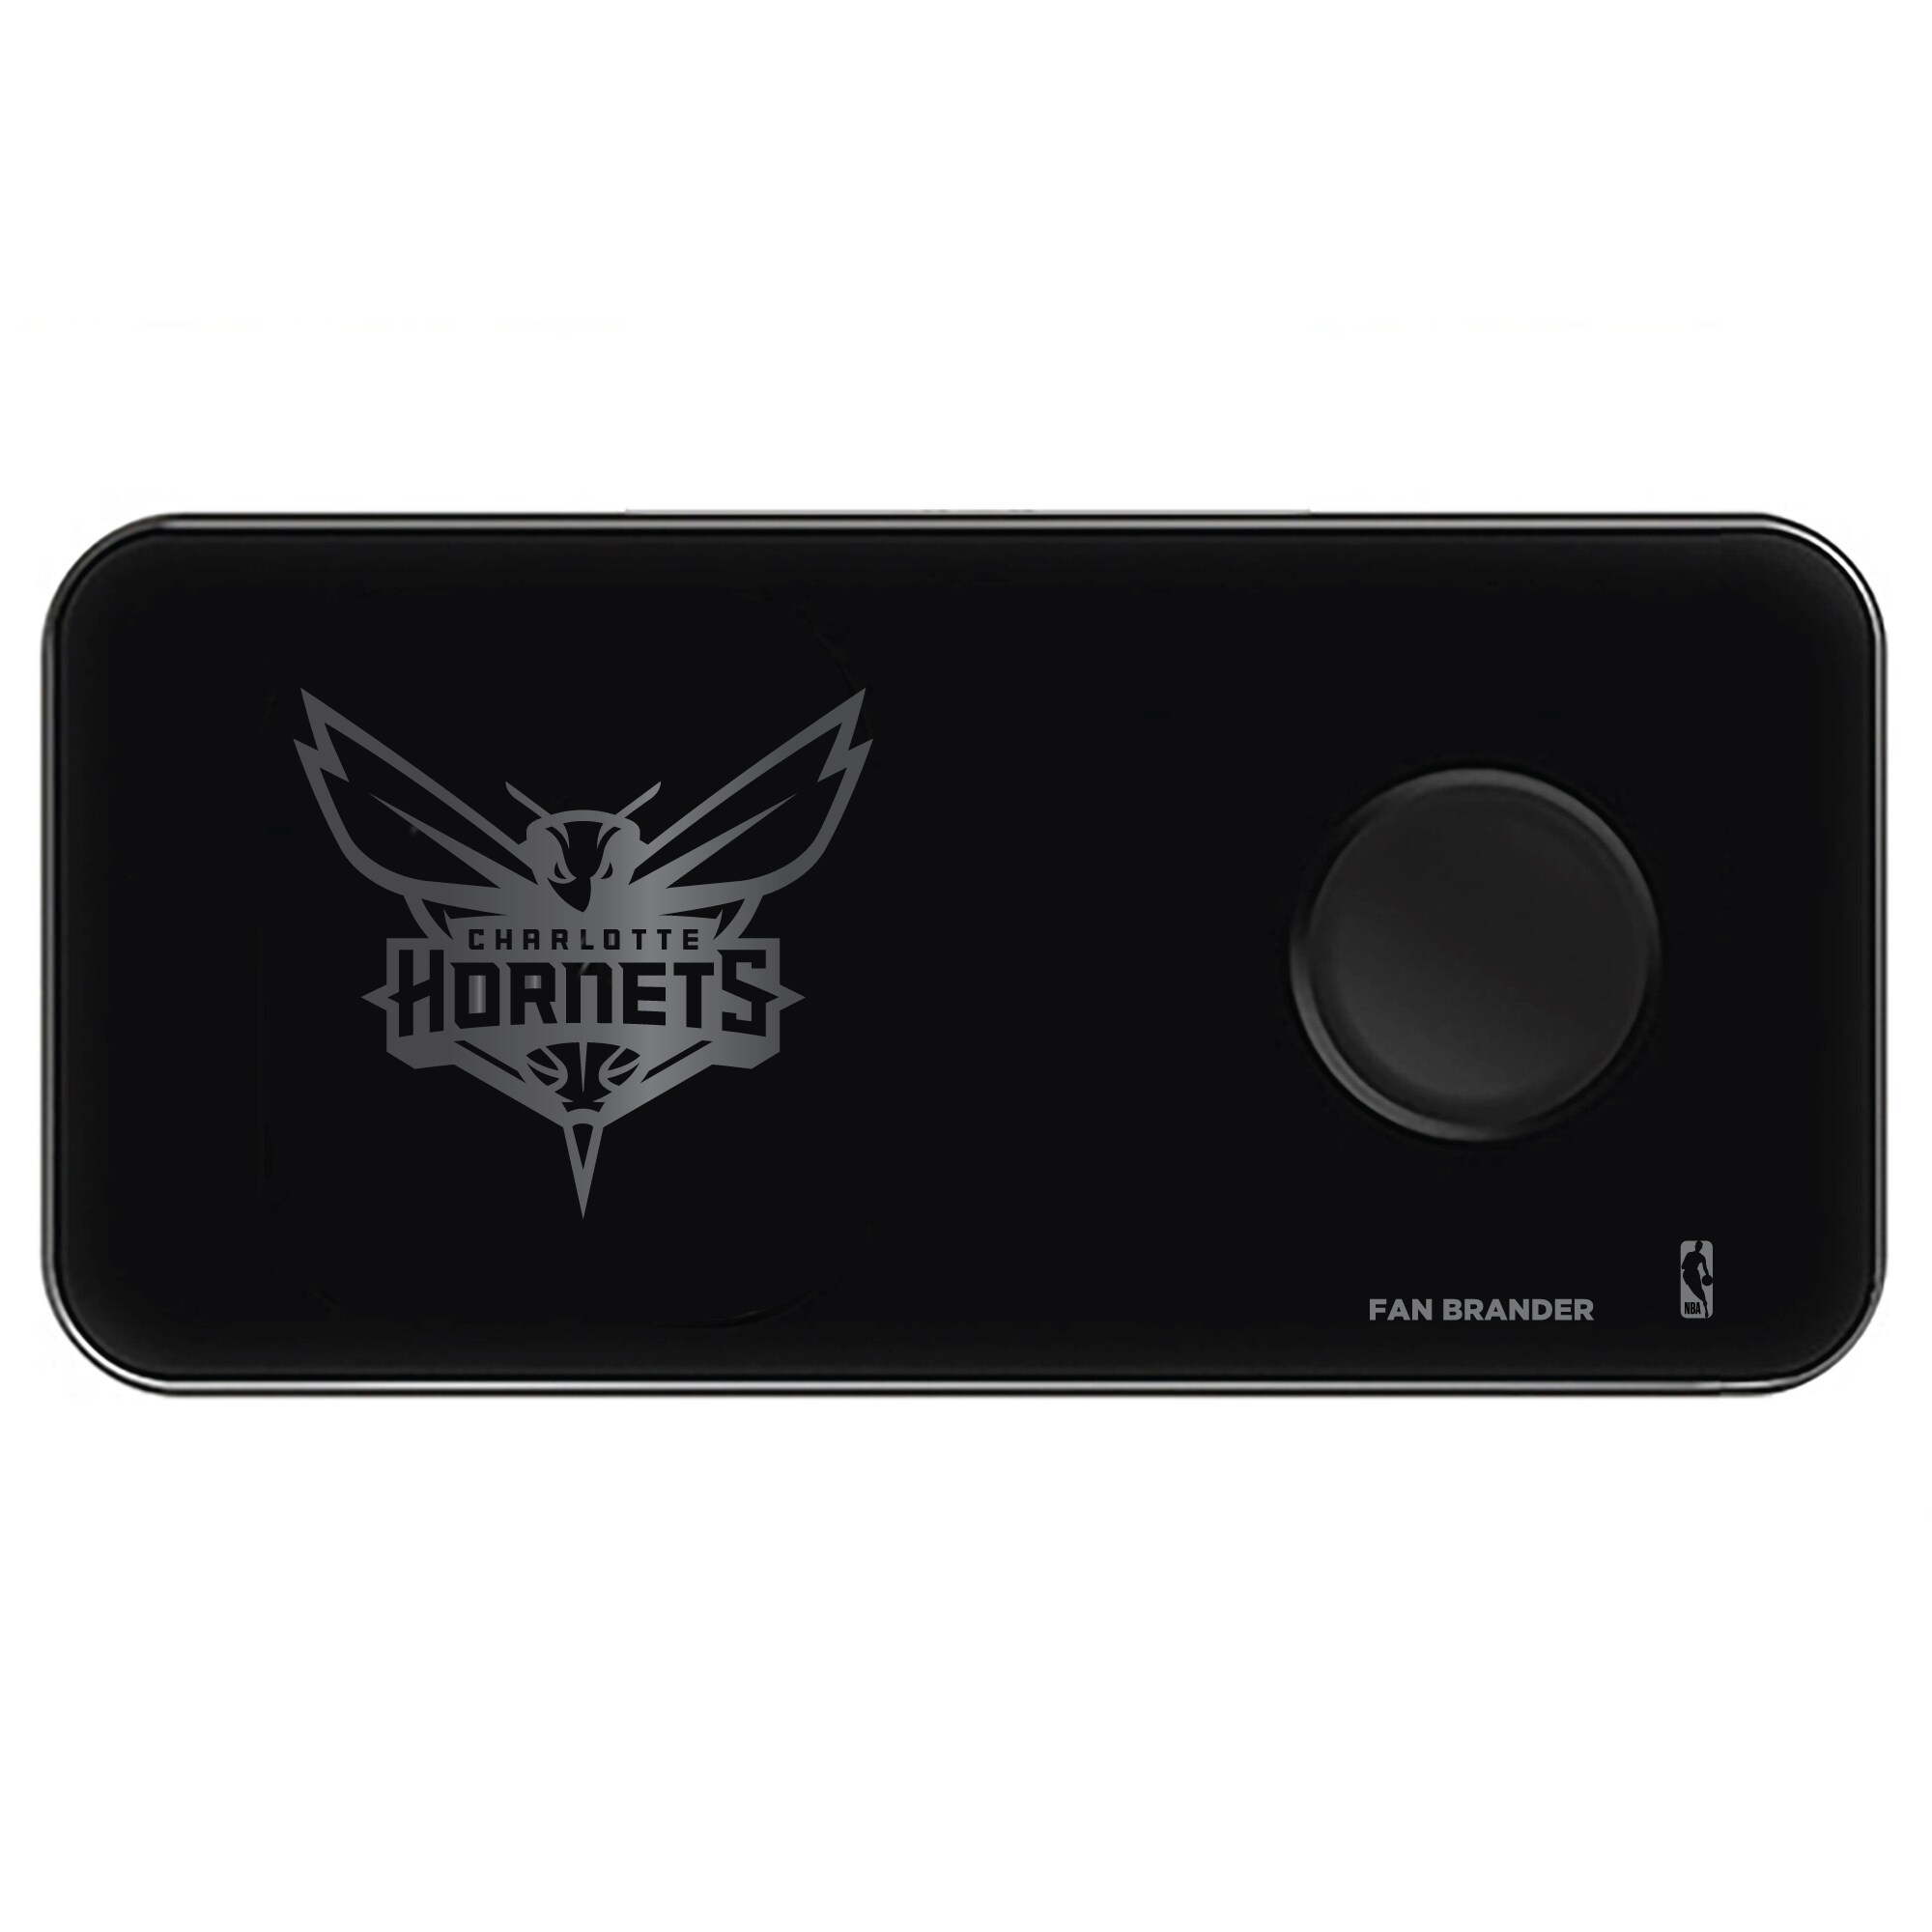 Charlotte Hornets 3-in-1 Glass Wireless Charge Pad - Black